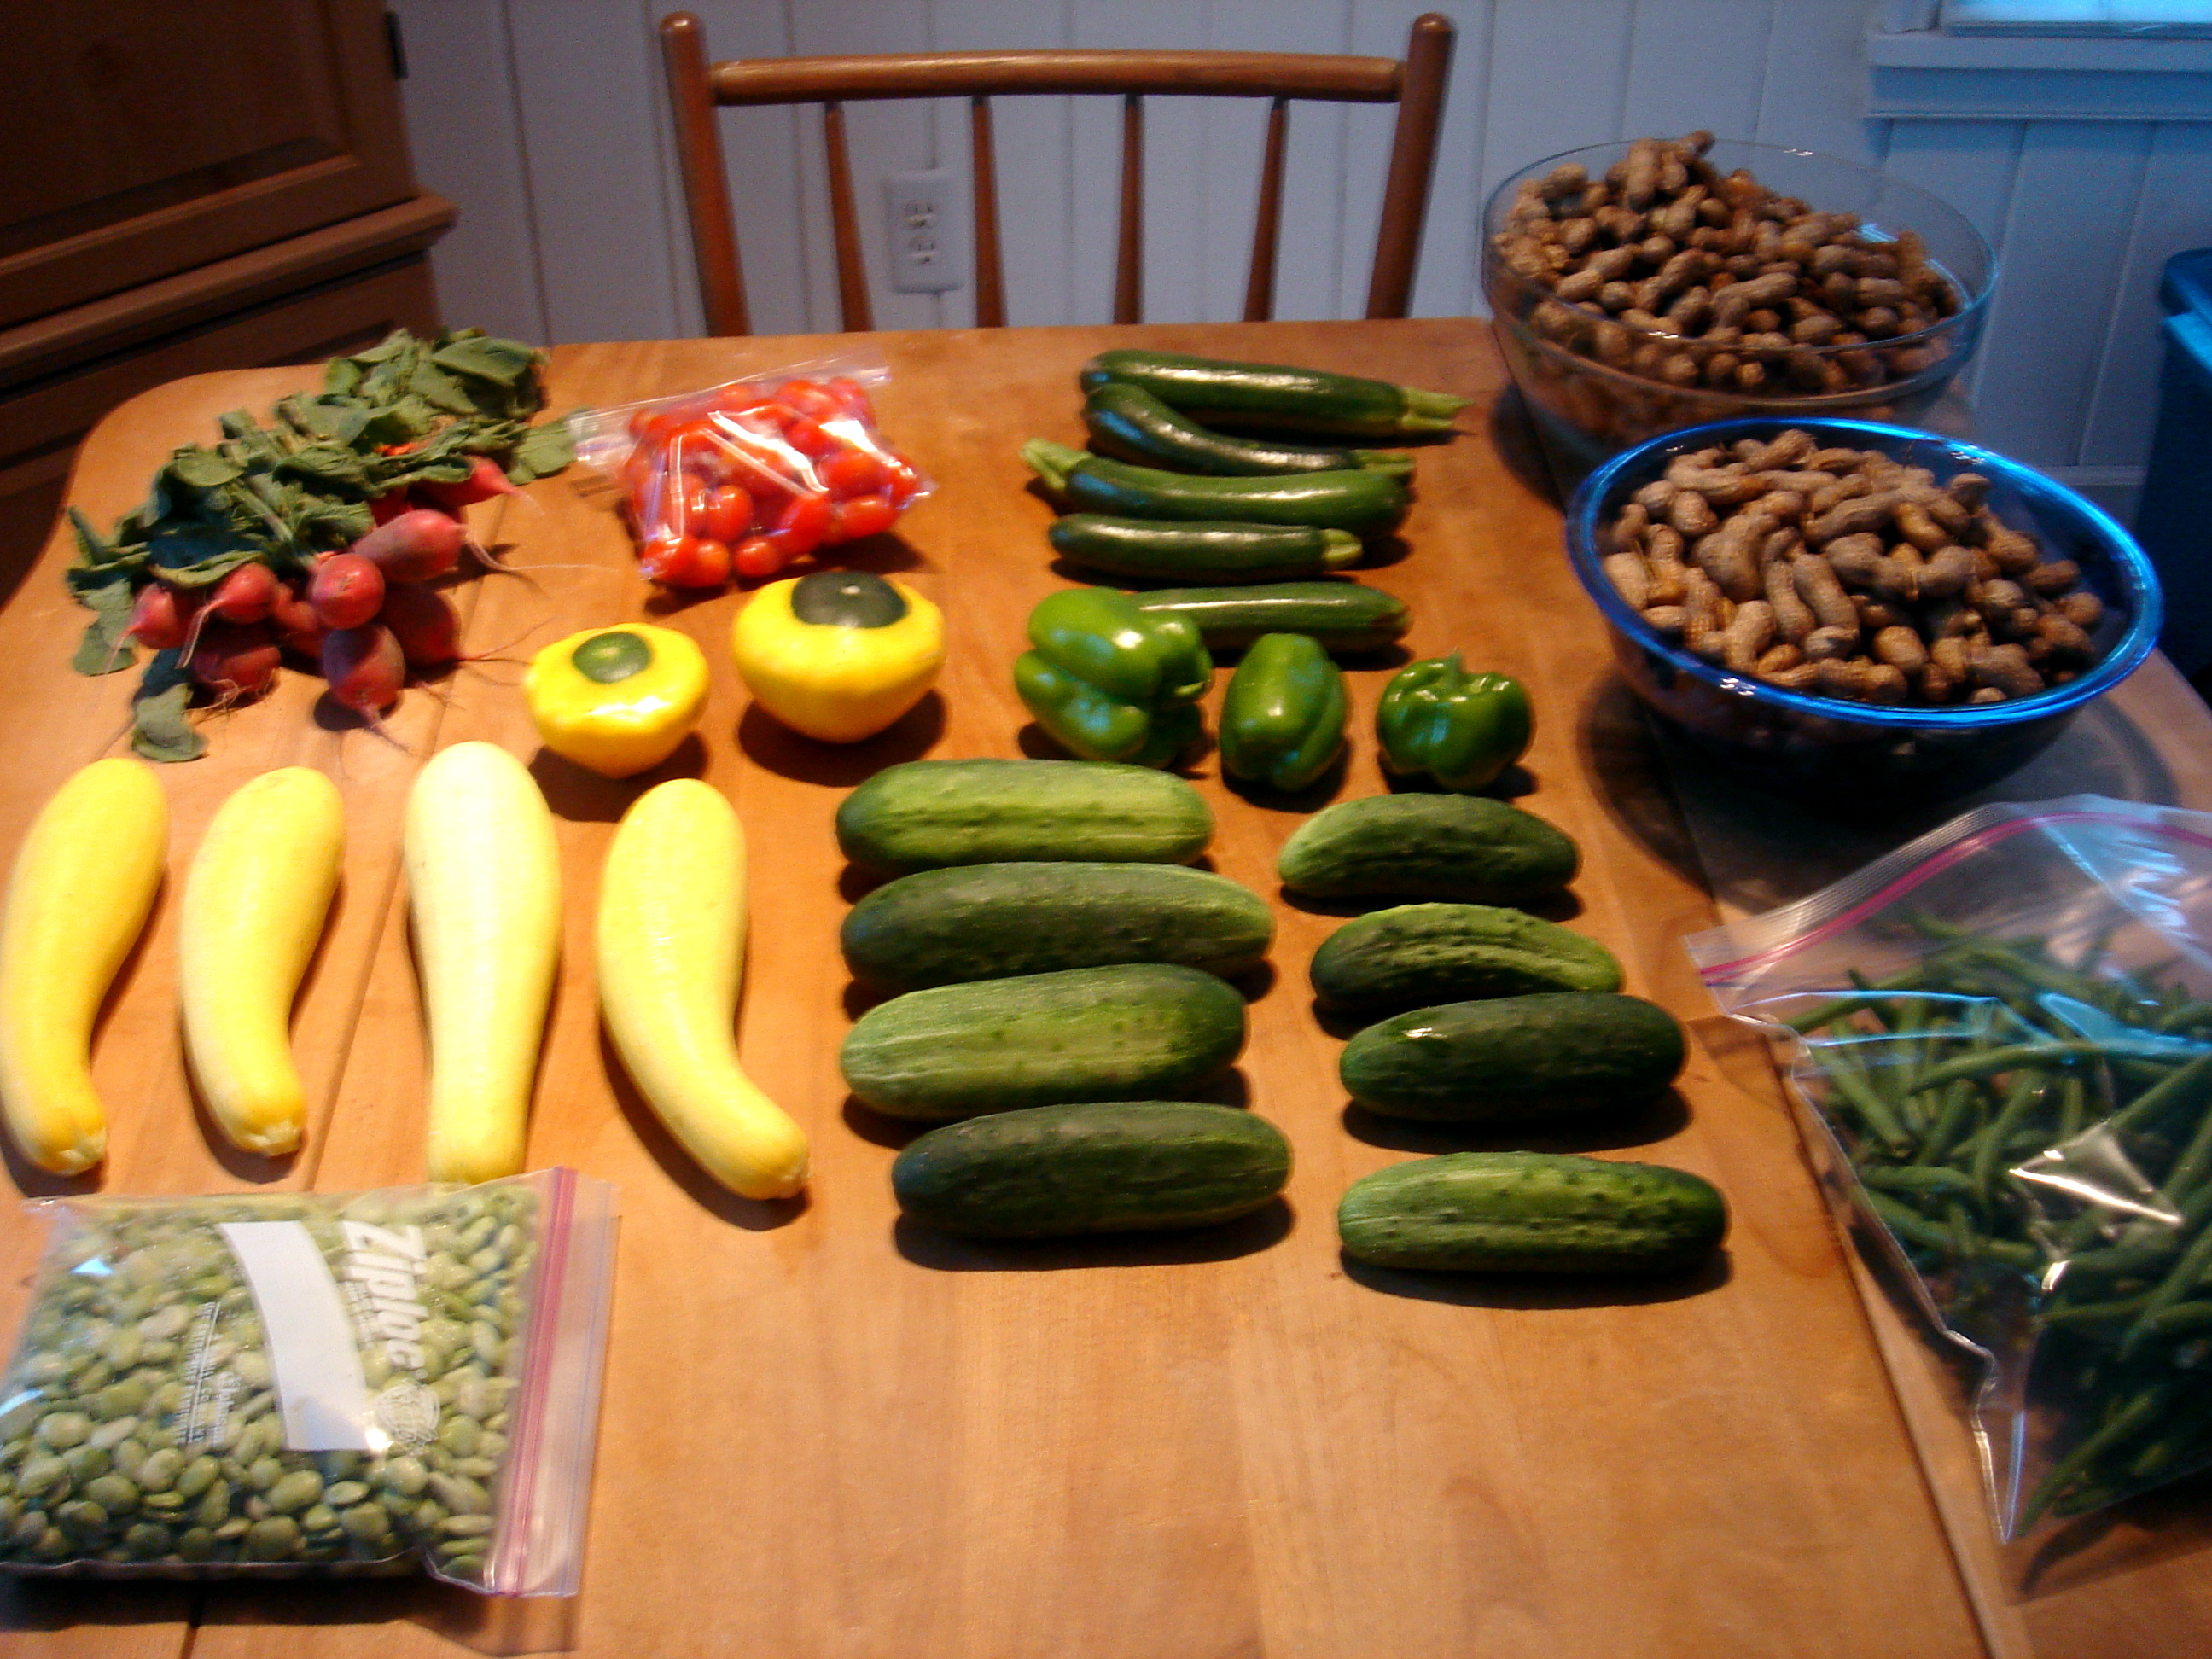 a typical weekly delivery from our CSA